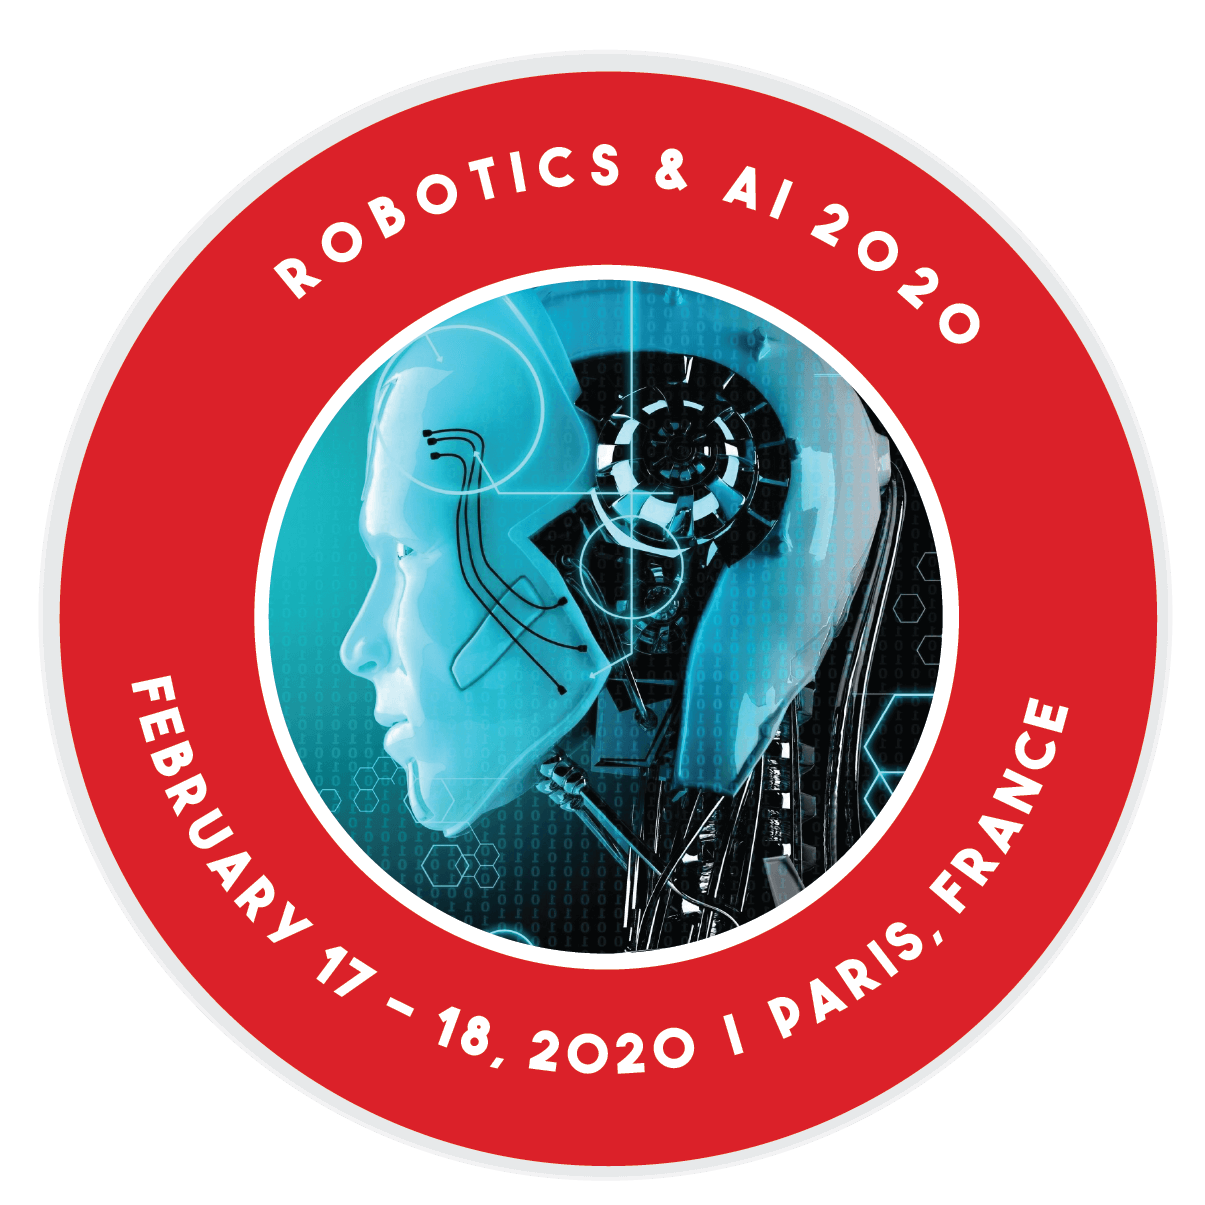 International Conference on Robotics and Artificial Intelligence